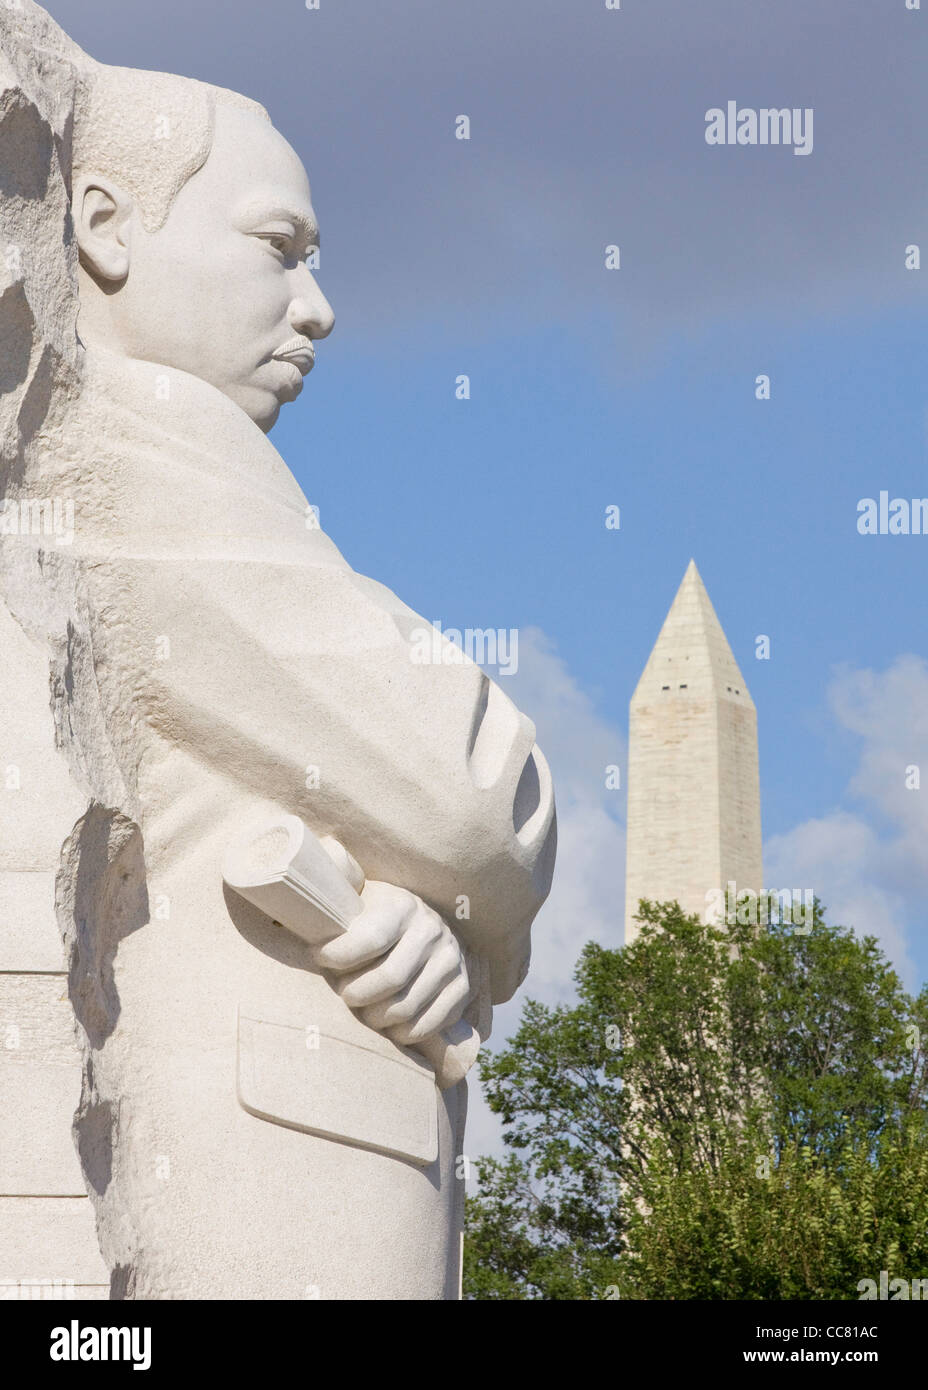 Martin Luther King Jr. memorial - Stock Image